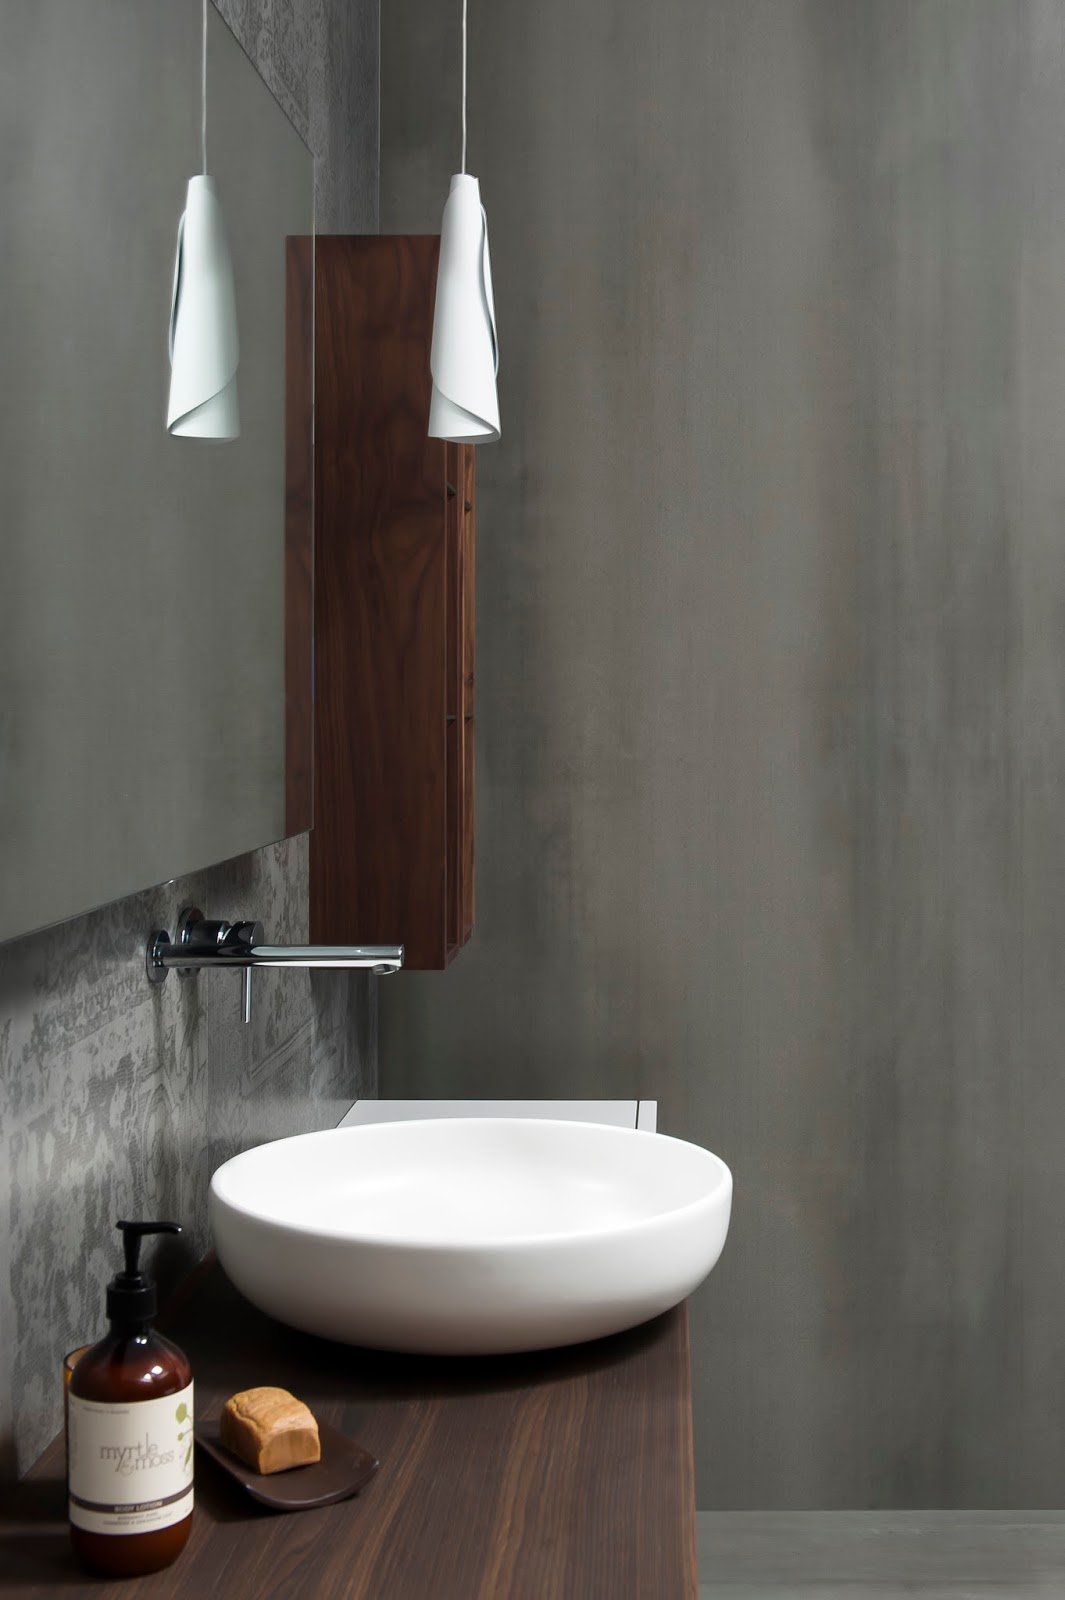 The Alexandria Based Design Company Won The HIA NSW Bathroom Design  Partnered By Caroma For Their Project At Crows Nest.